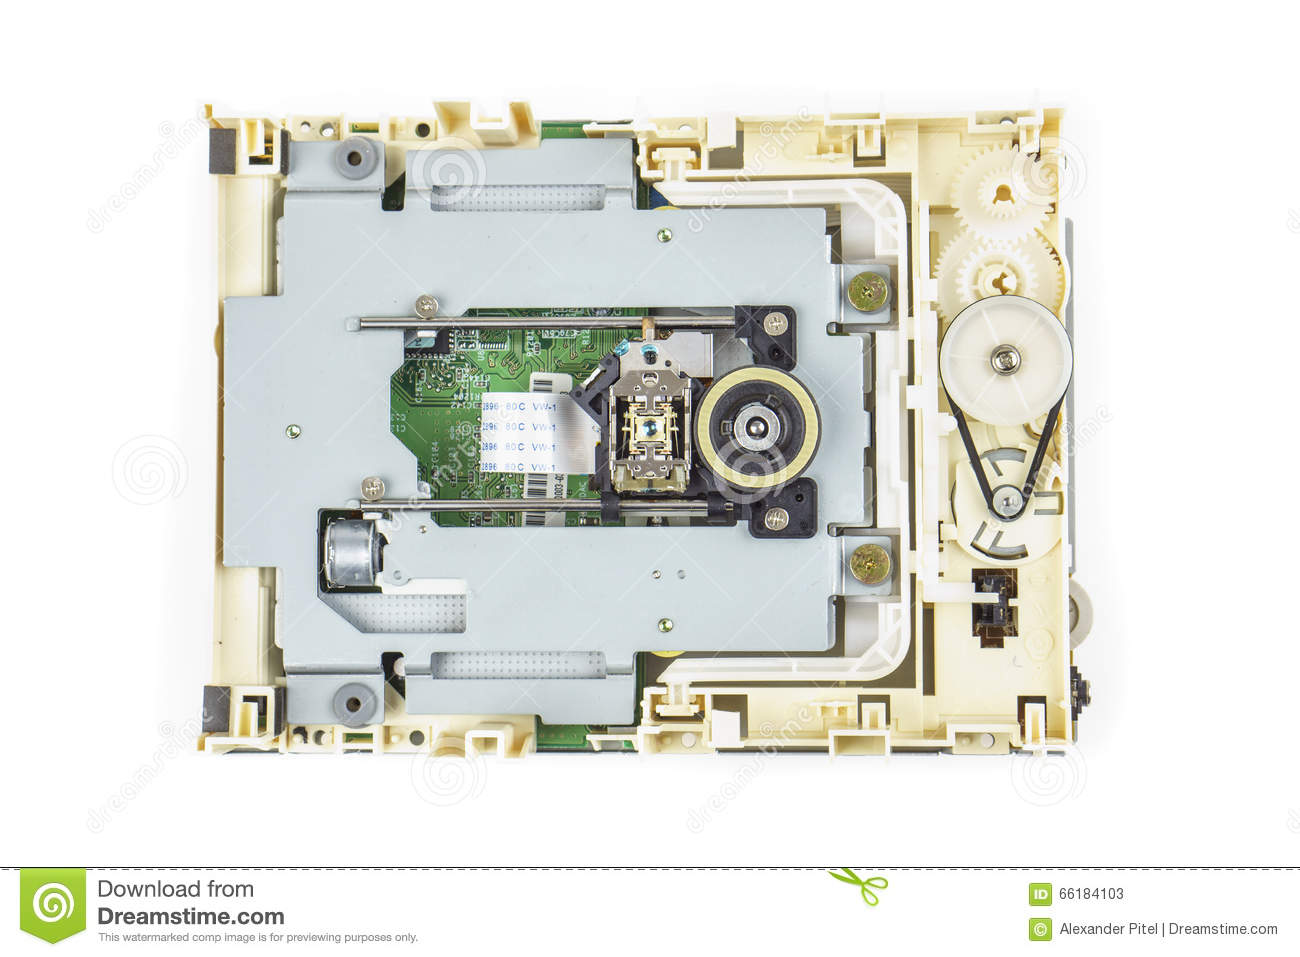 Computer Cd Rom Drive Disassembled 02 Stock Image